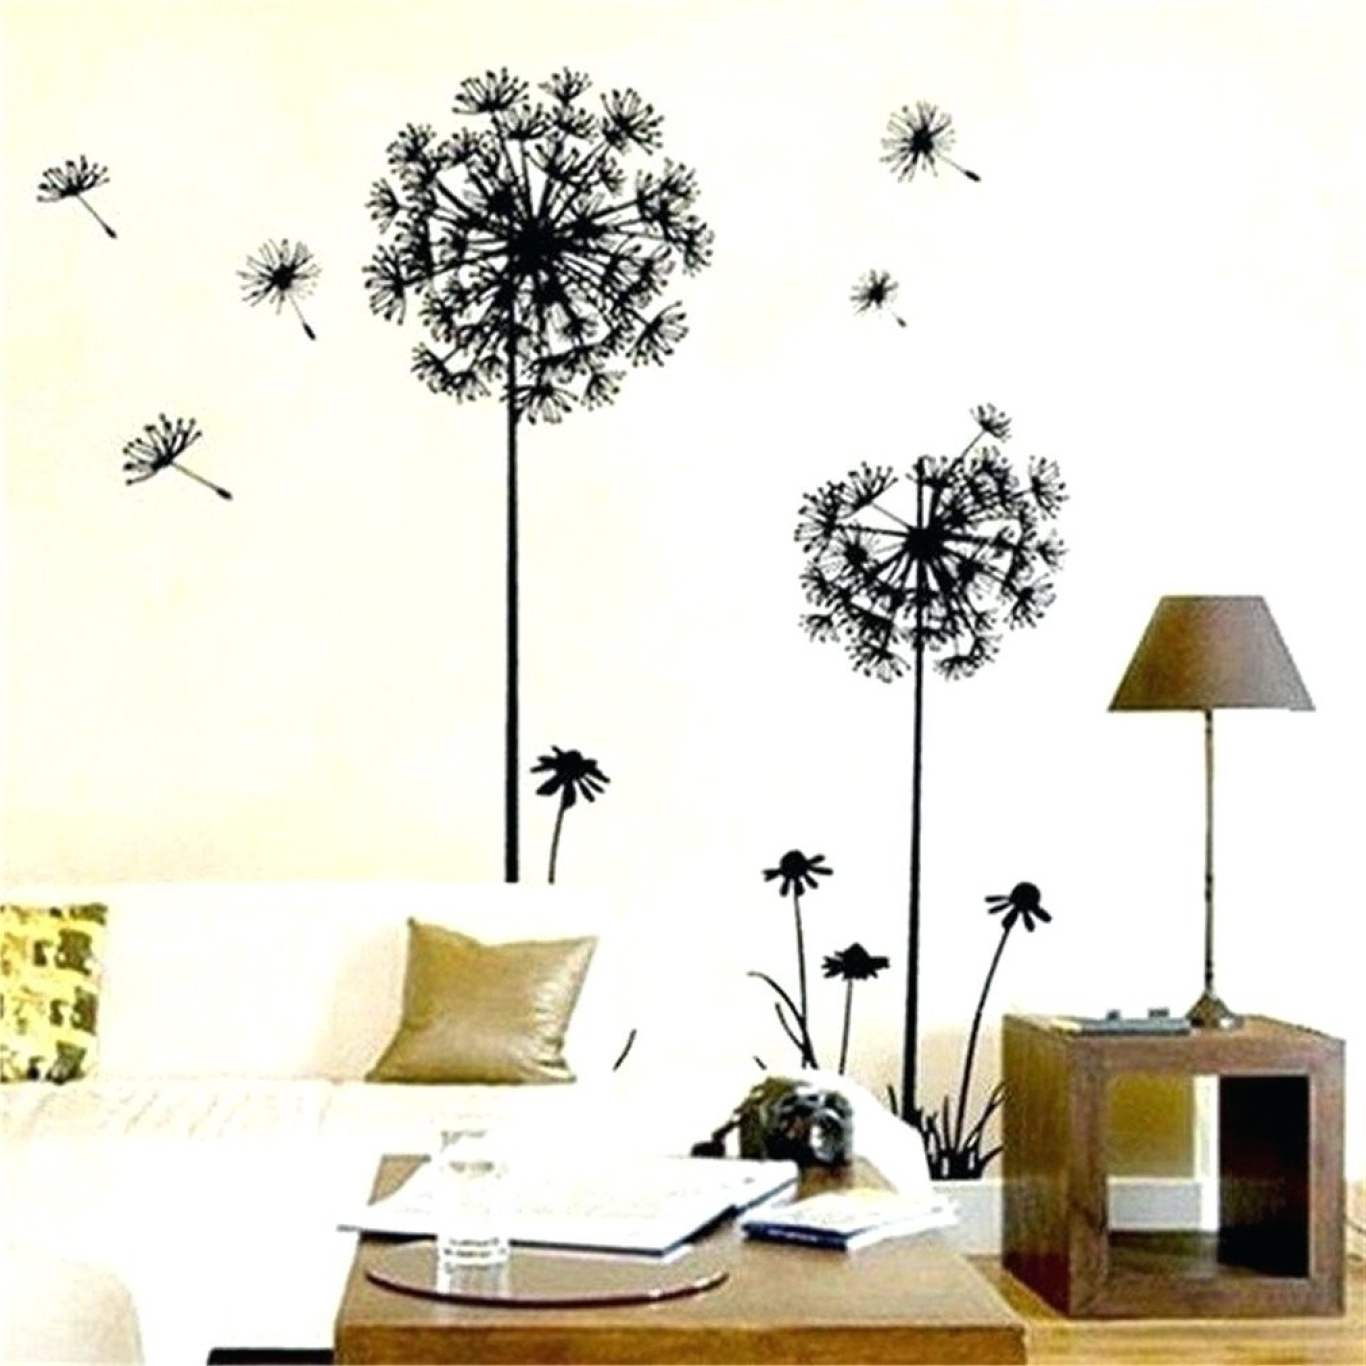 Adhesive Art Wall Accents Pertaining To Widely Used Removable Wall Art (View 4 of 15)